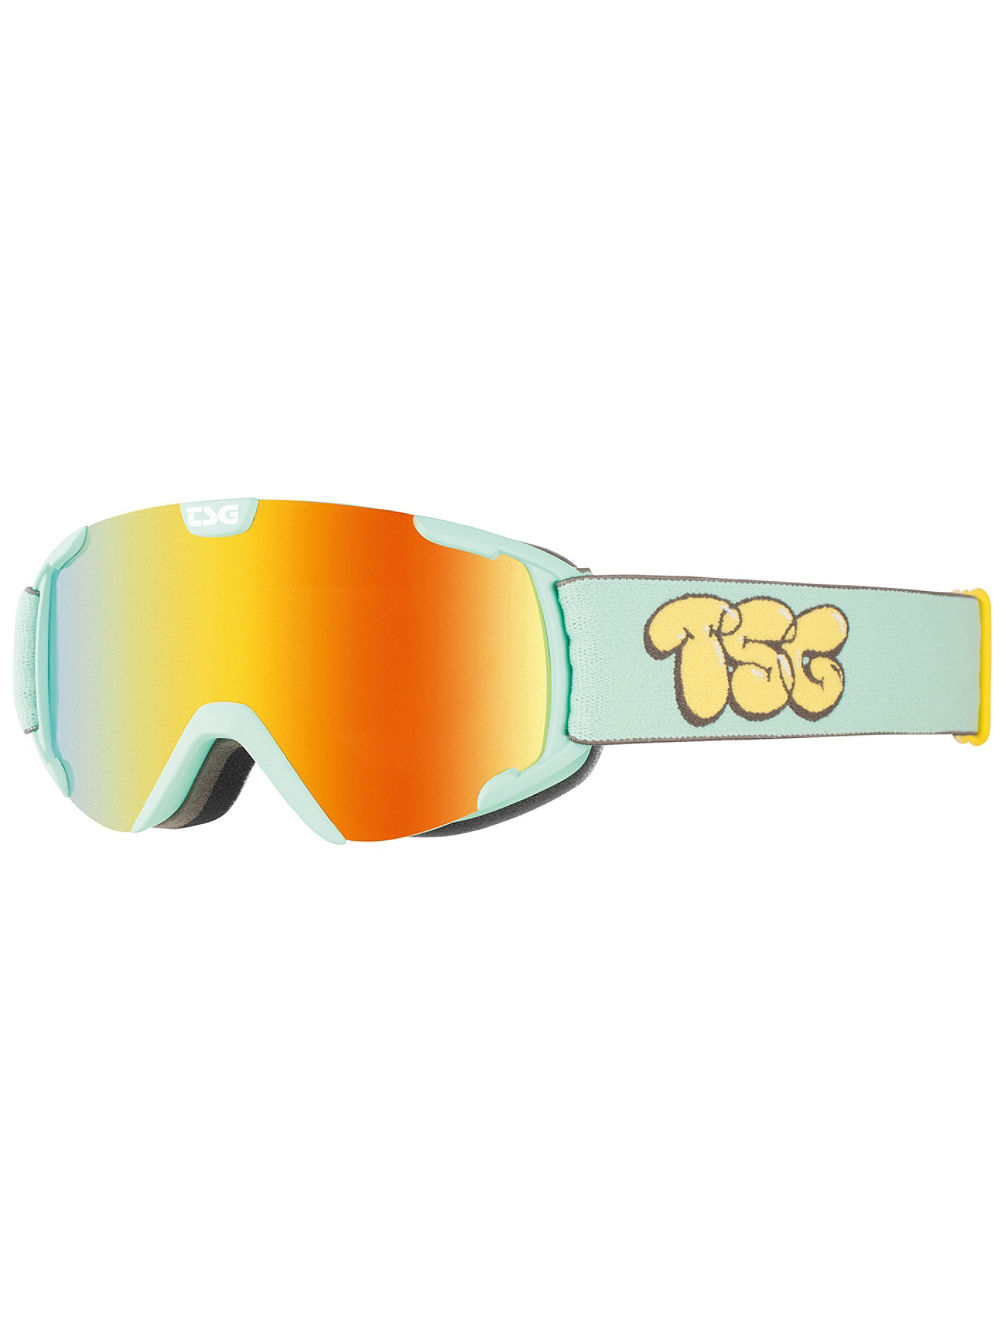 Expect Mini Bubblegum Youth Goggle